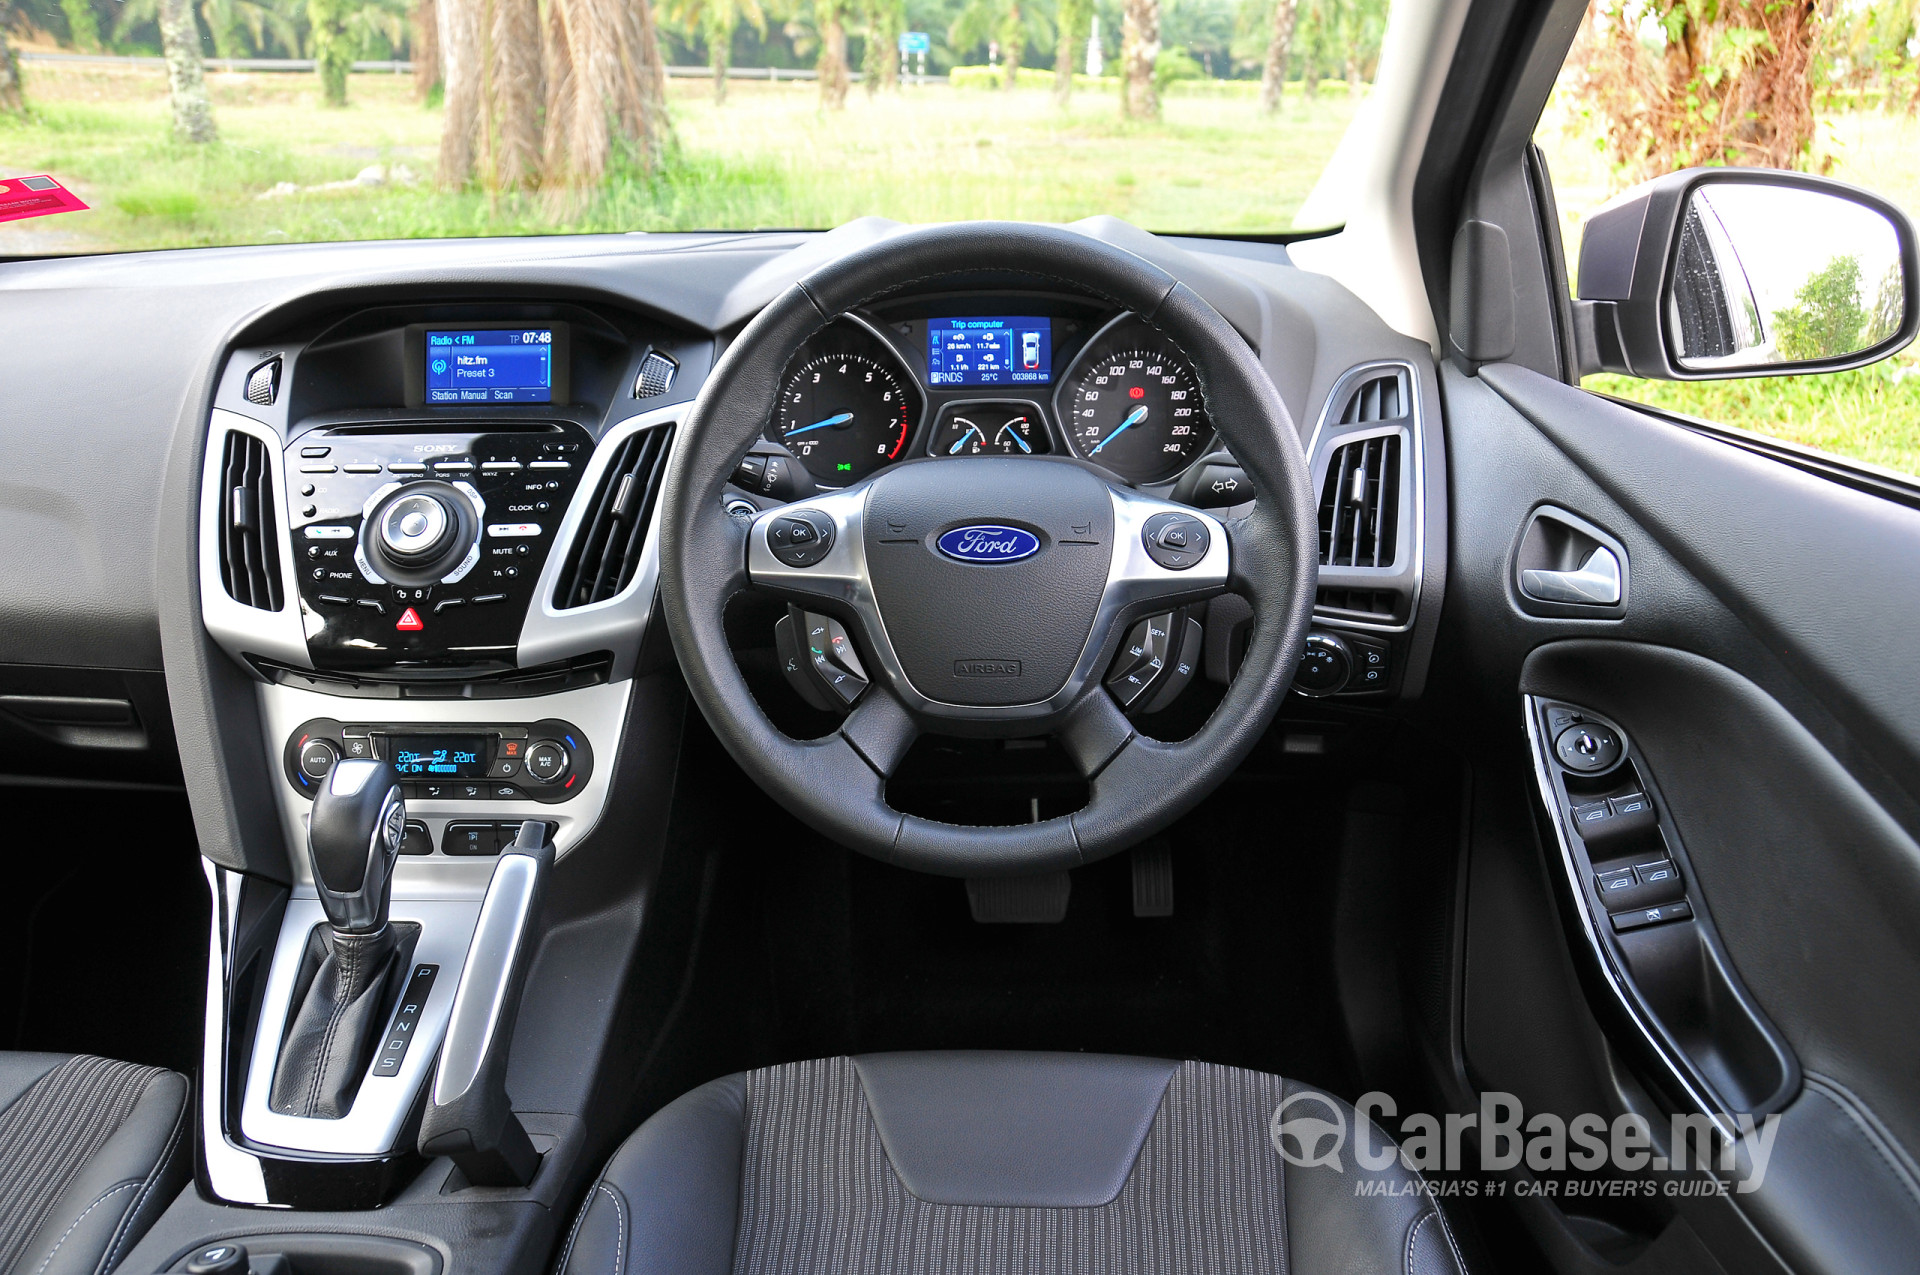 Ford Focus Mk3 C346 2012 Interior Image 10819 In Malaysia Reviews Specs Prices